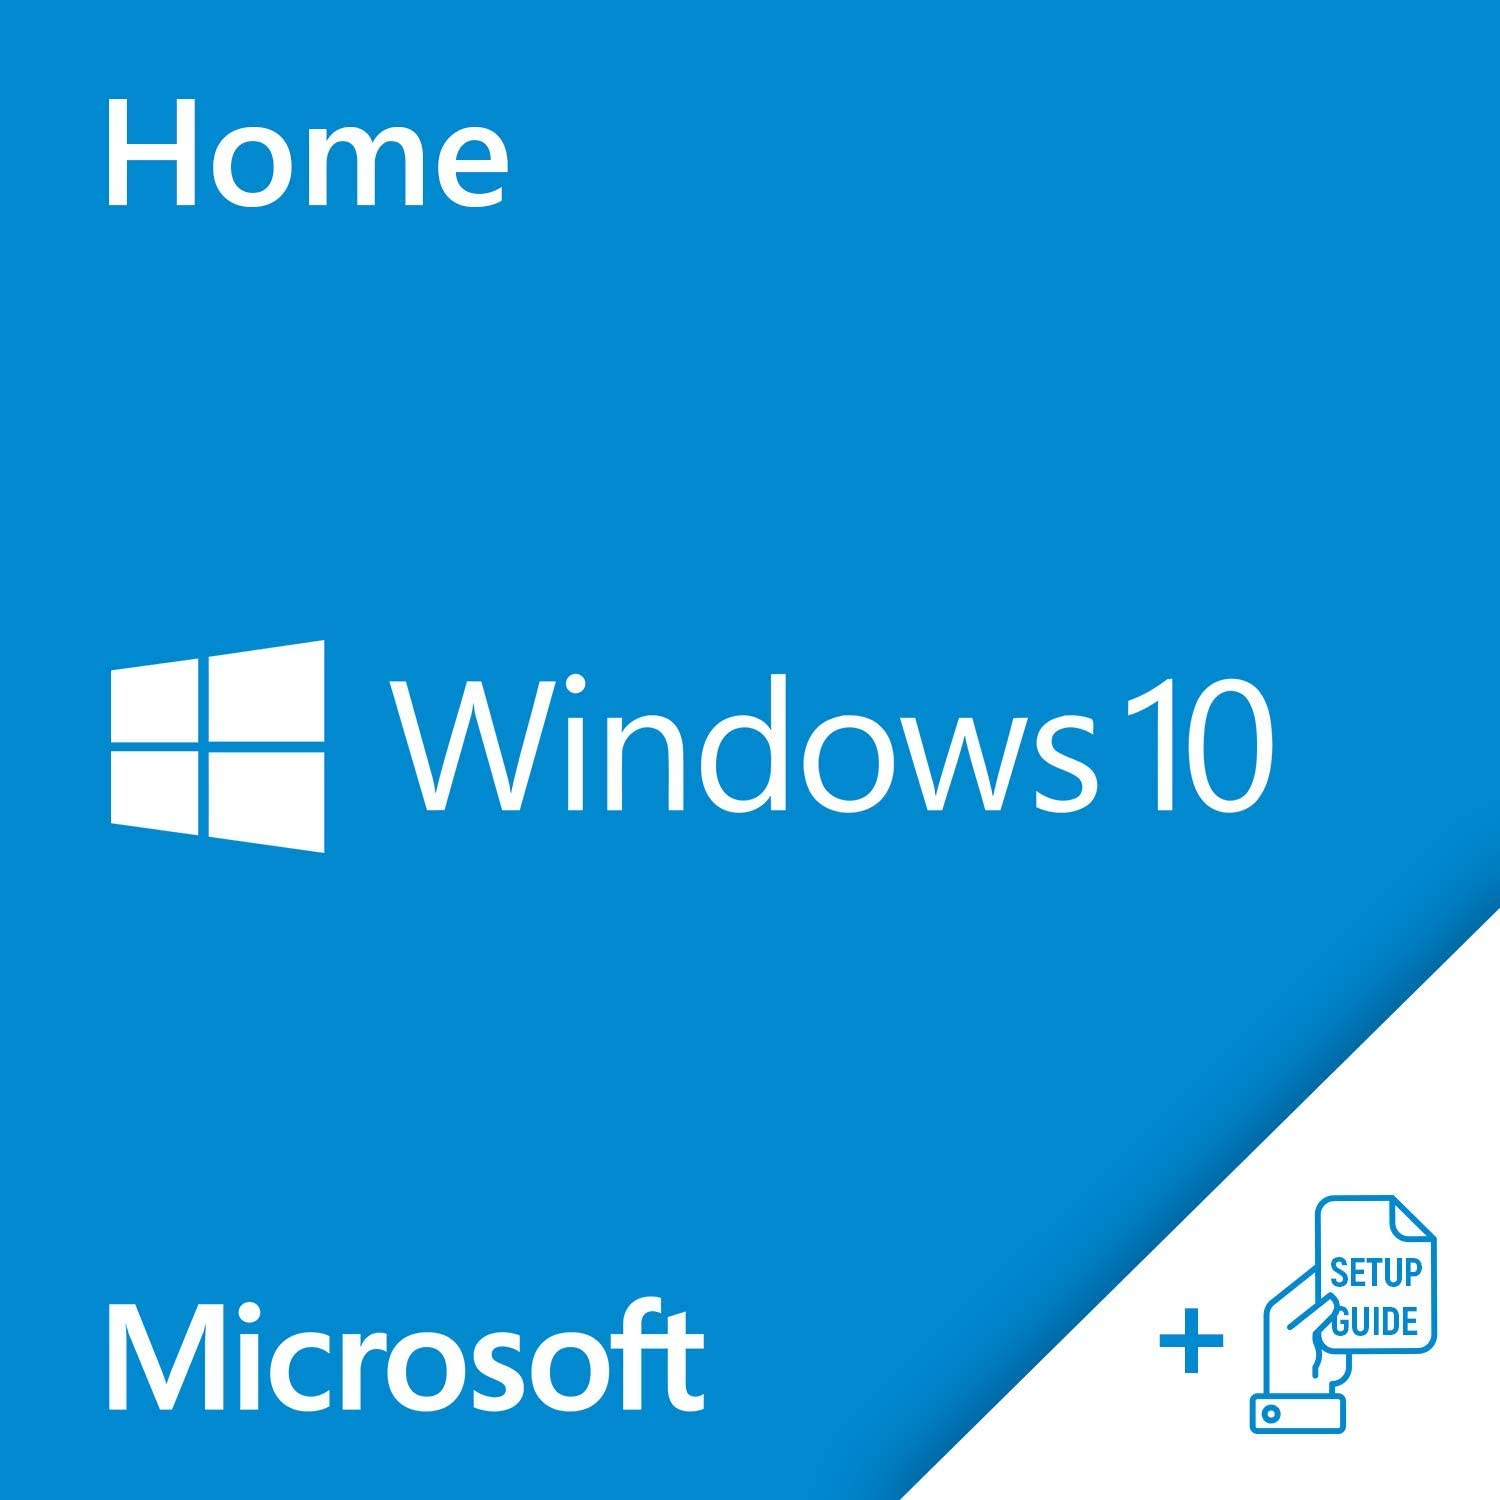 Windows10 Home OEM64 Bit DVD English Language | Full OEM Product Package bundled with Setup Guide